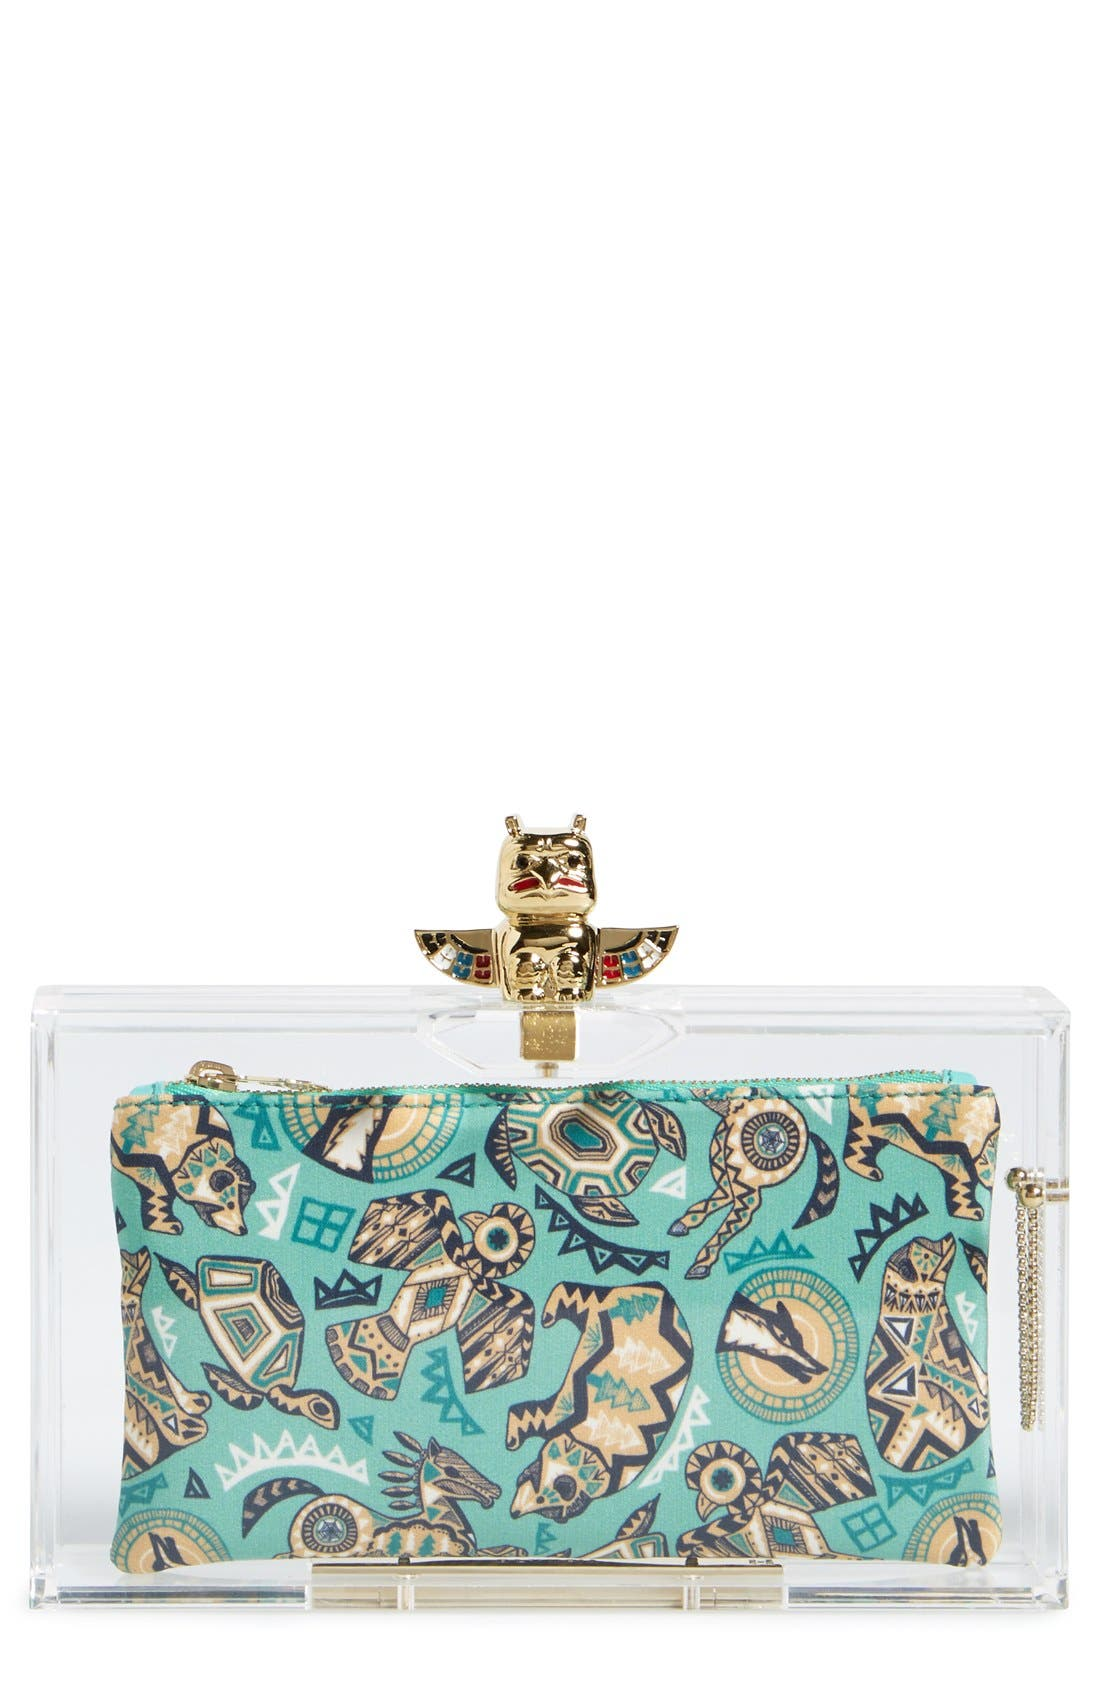 Alternate Image 1 Selected - Charlotte Olympia 'Pandora' Clutch with Zip Pouches